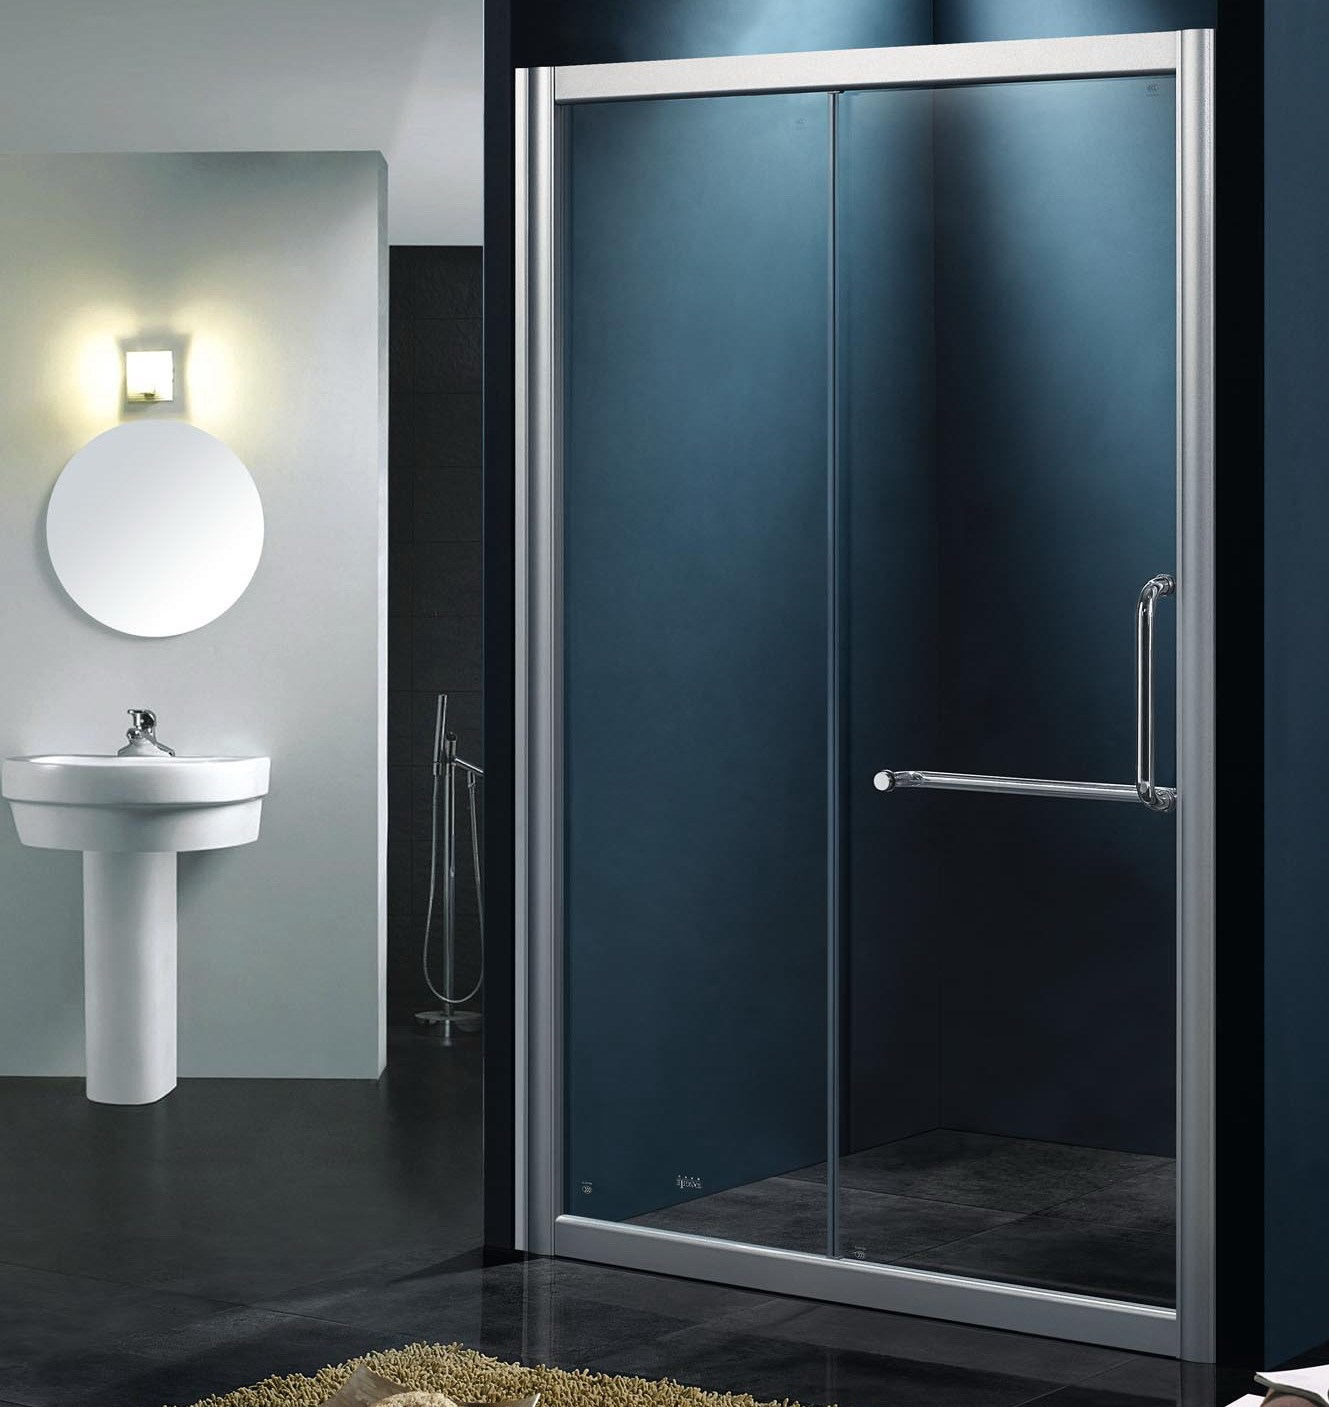 Magnificent 80 Bathroom Partitions Halifax Decorating Design Of Bathroom Partitions Hdpe